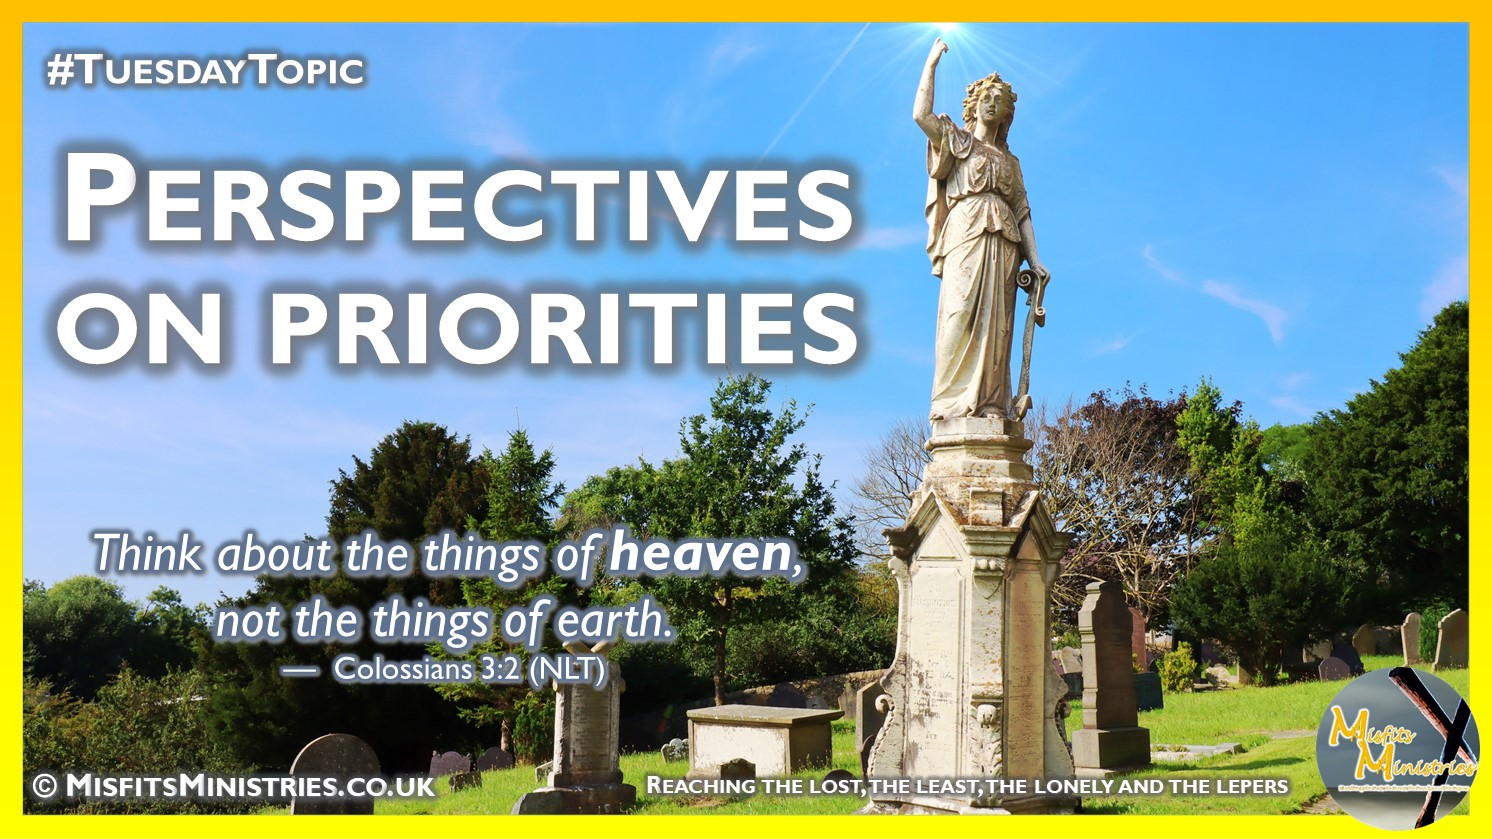 Tuesday Topic 2021wk38 - Perspectives on Priorities